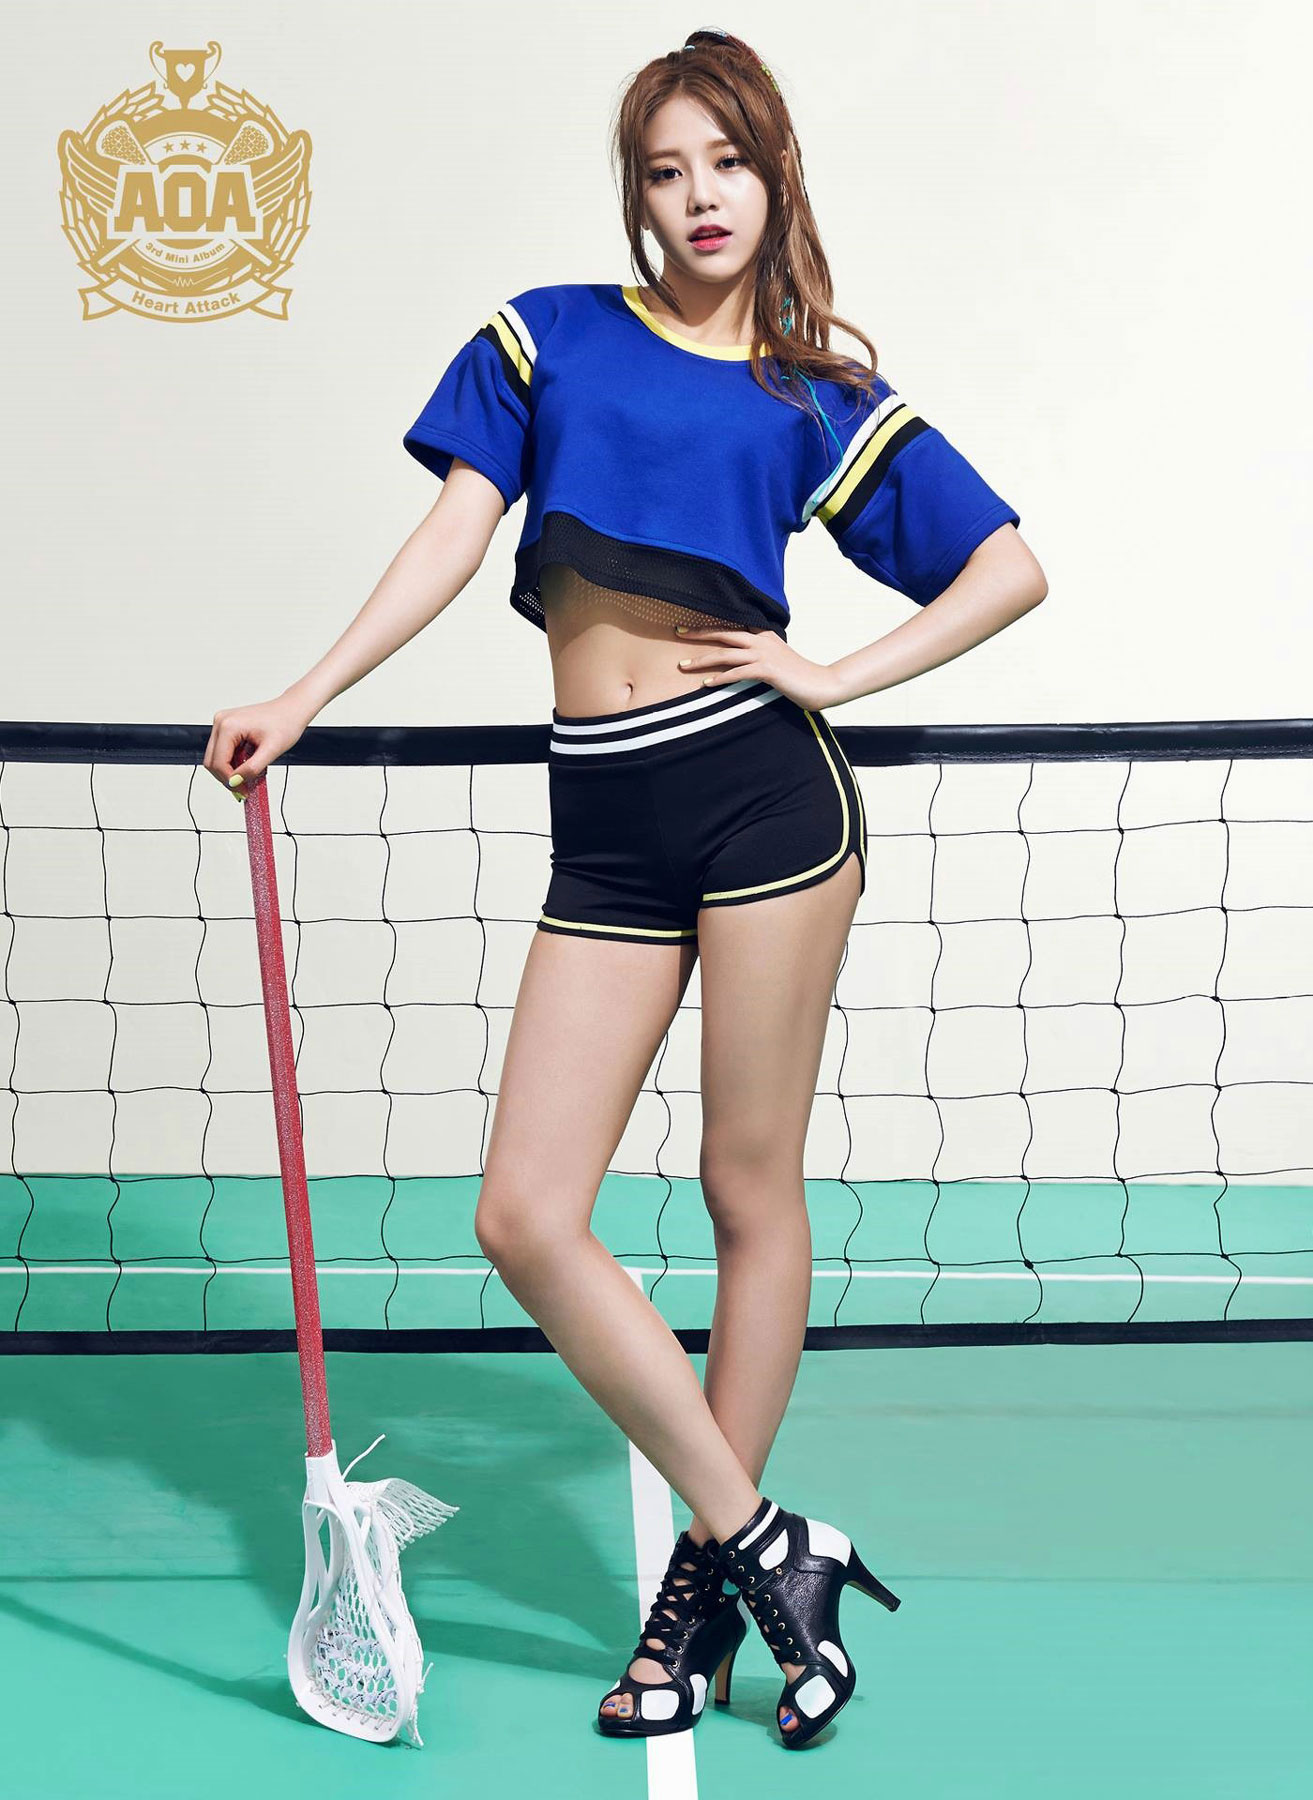 AOA Hyejeong Heart Attack Korean mini album